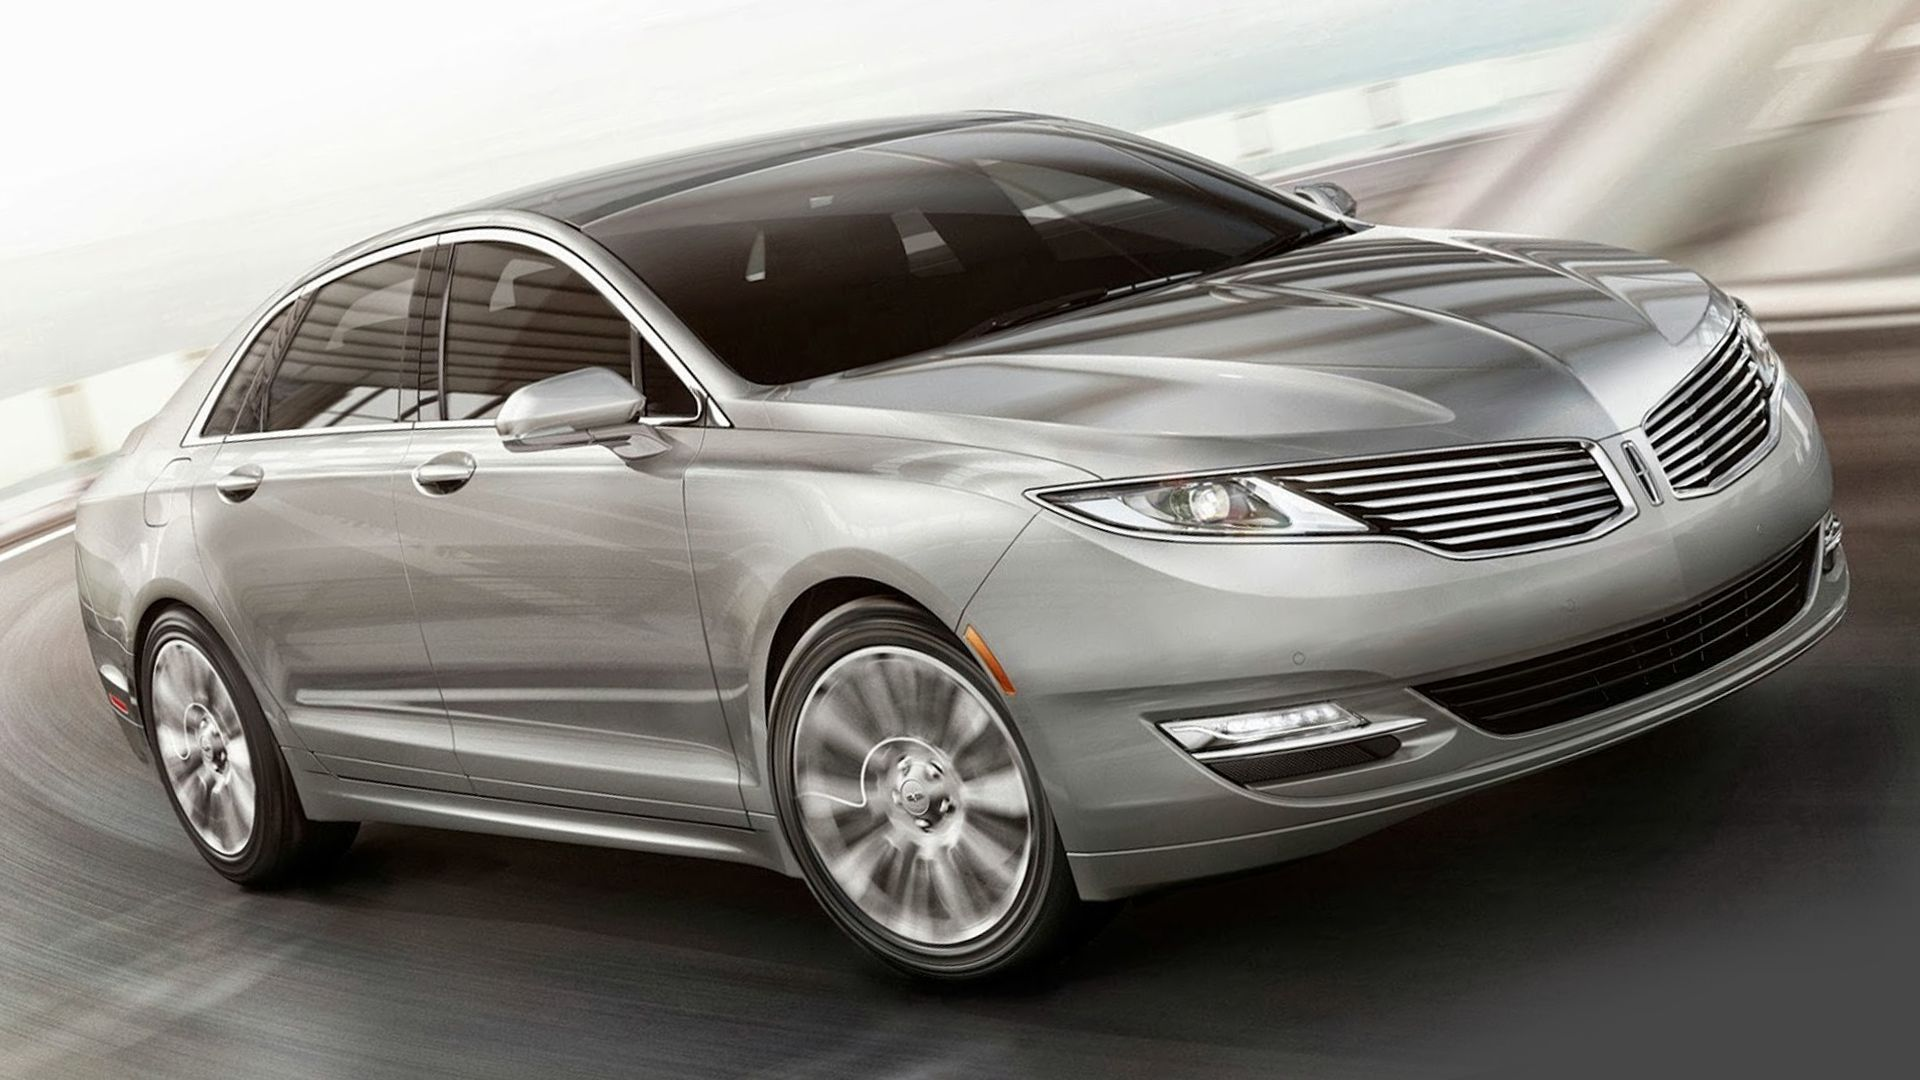 New 2018 Lincoln MKZ Exterior Redesign